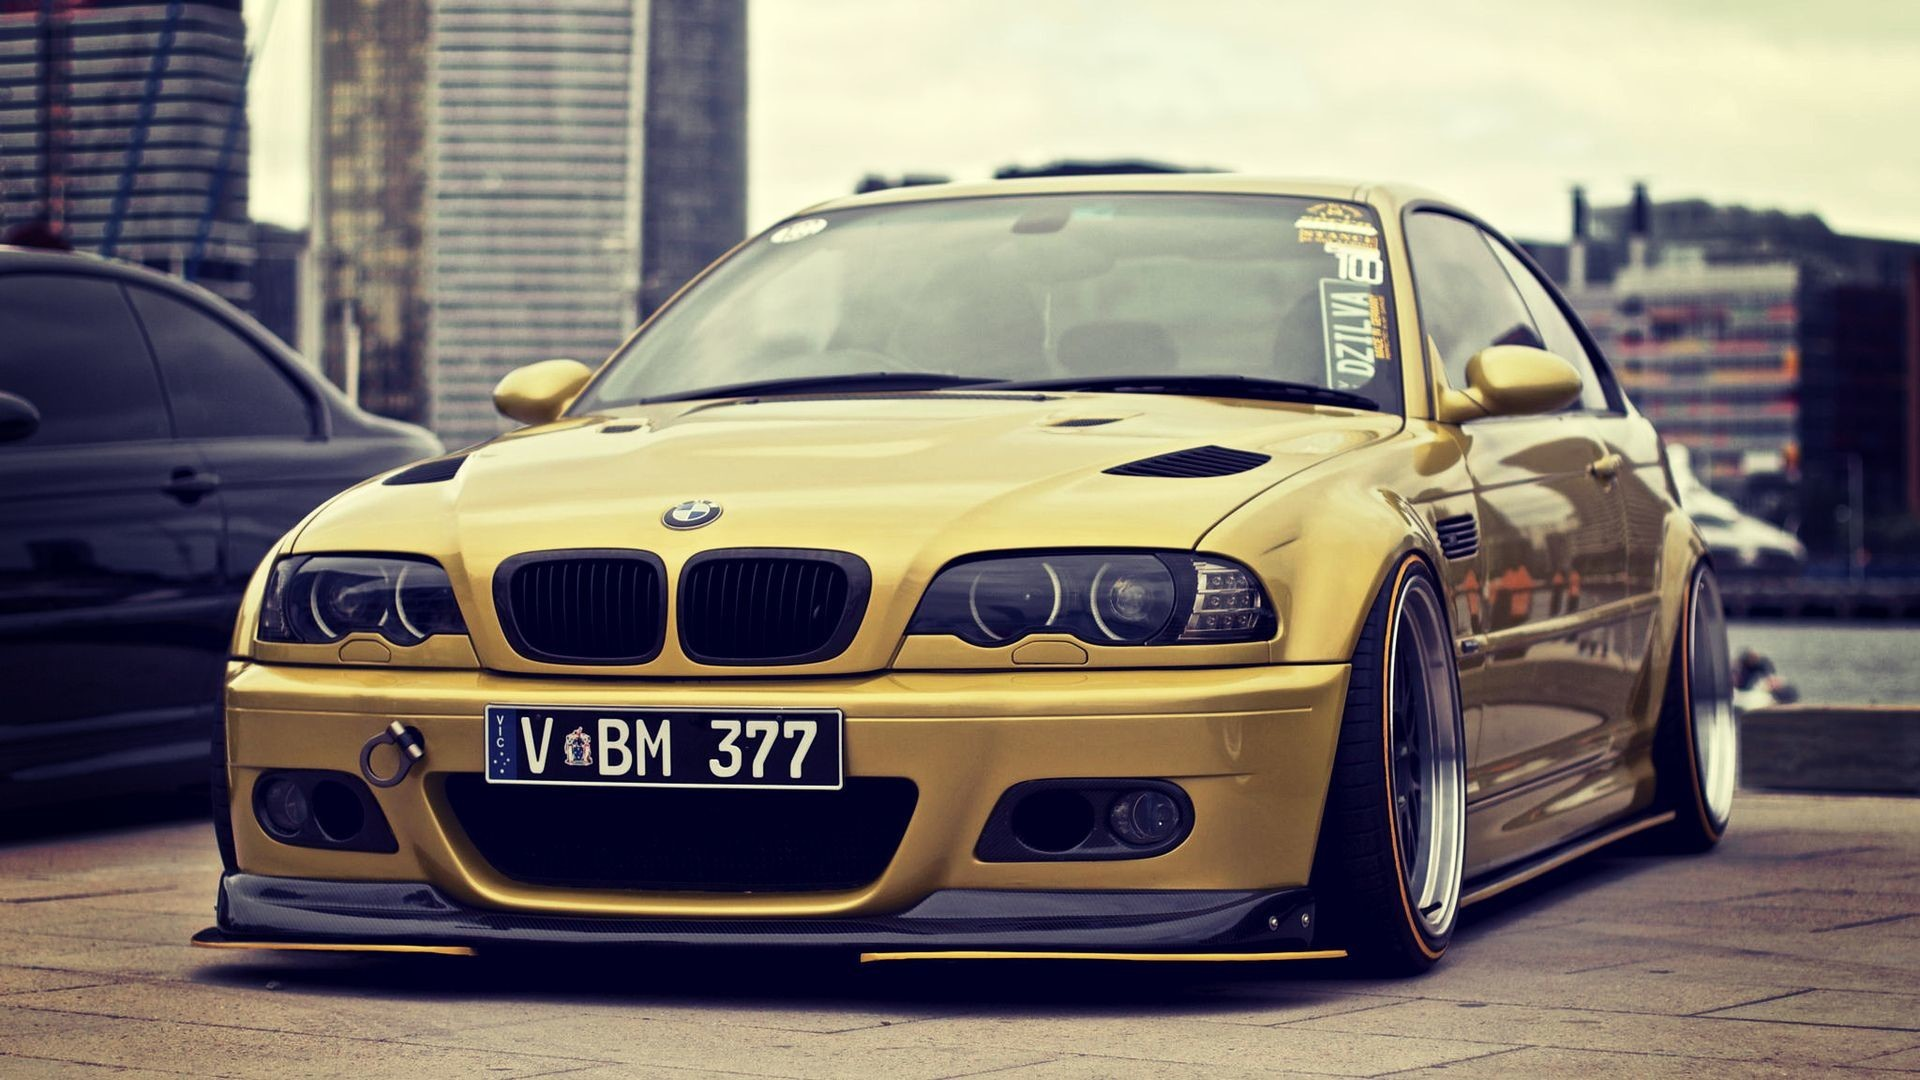 1920x1080  Image result for m3 bmw e46 wallpaper